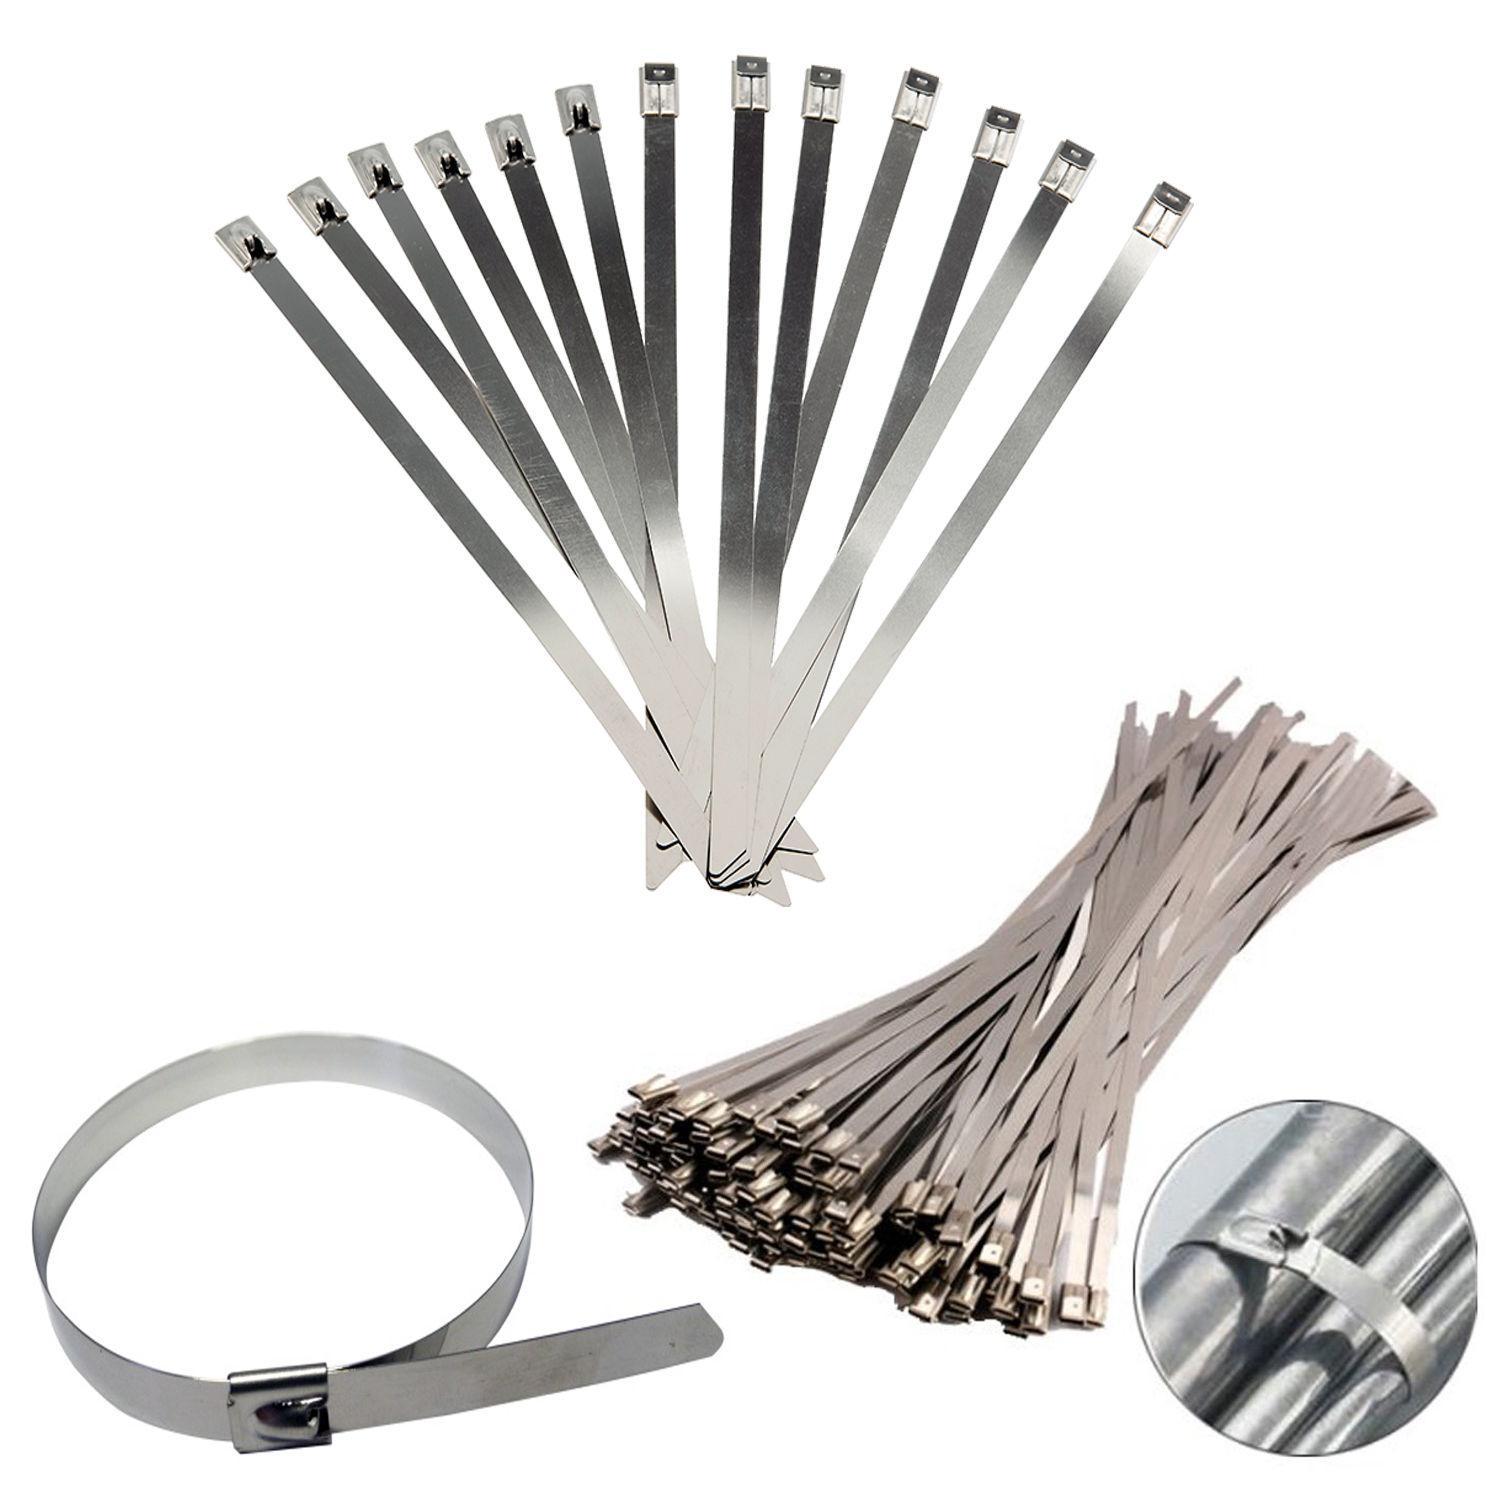 10 x Stainless Steel Metal Cable Ties **Exhaust Wrap High Temp** Heat Strap Zip